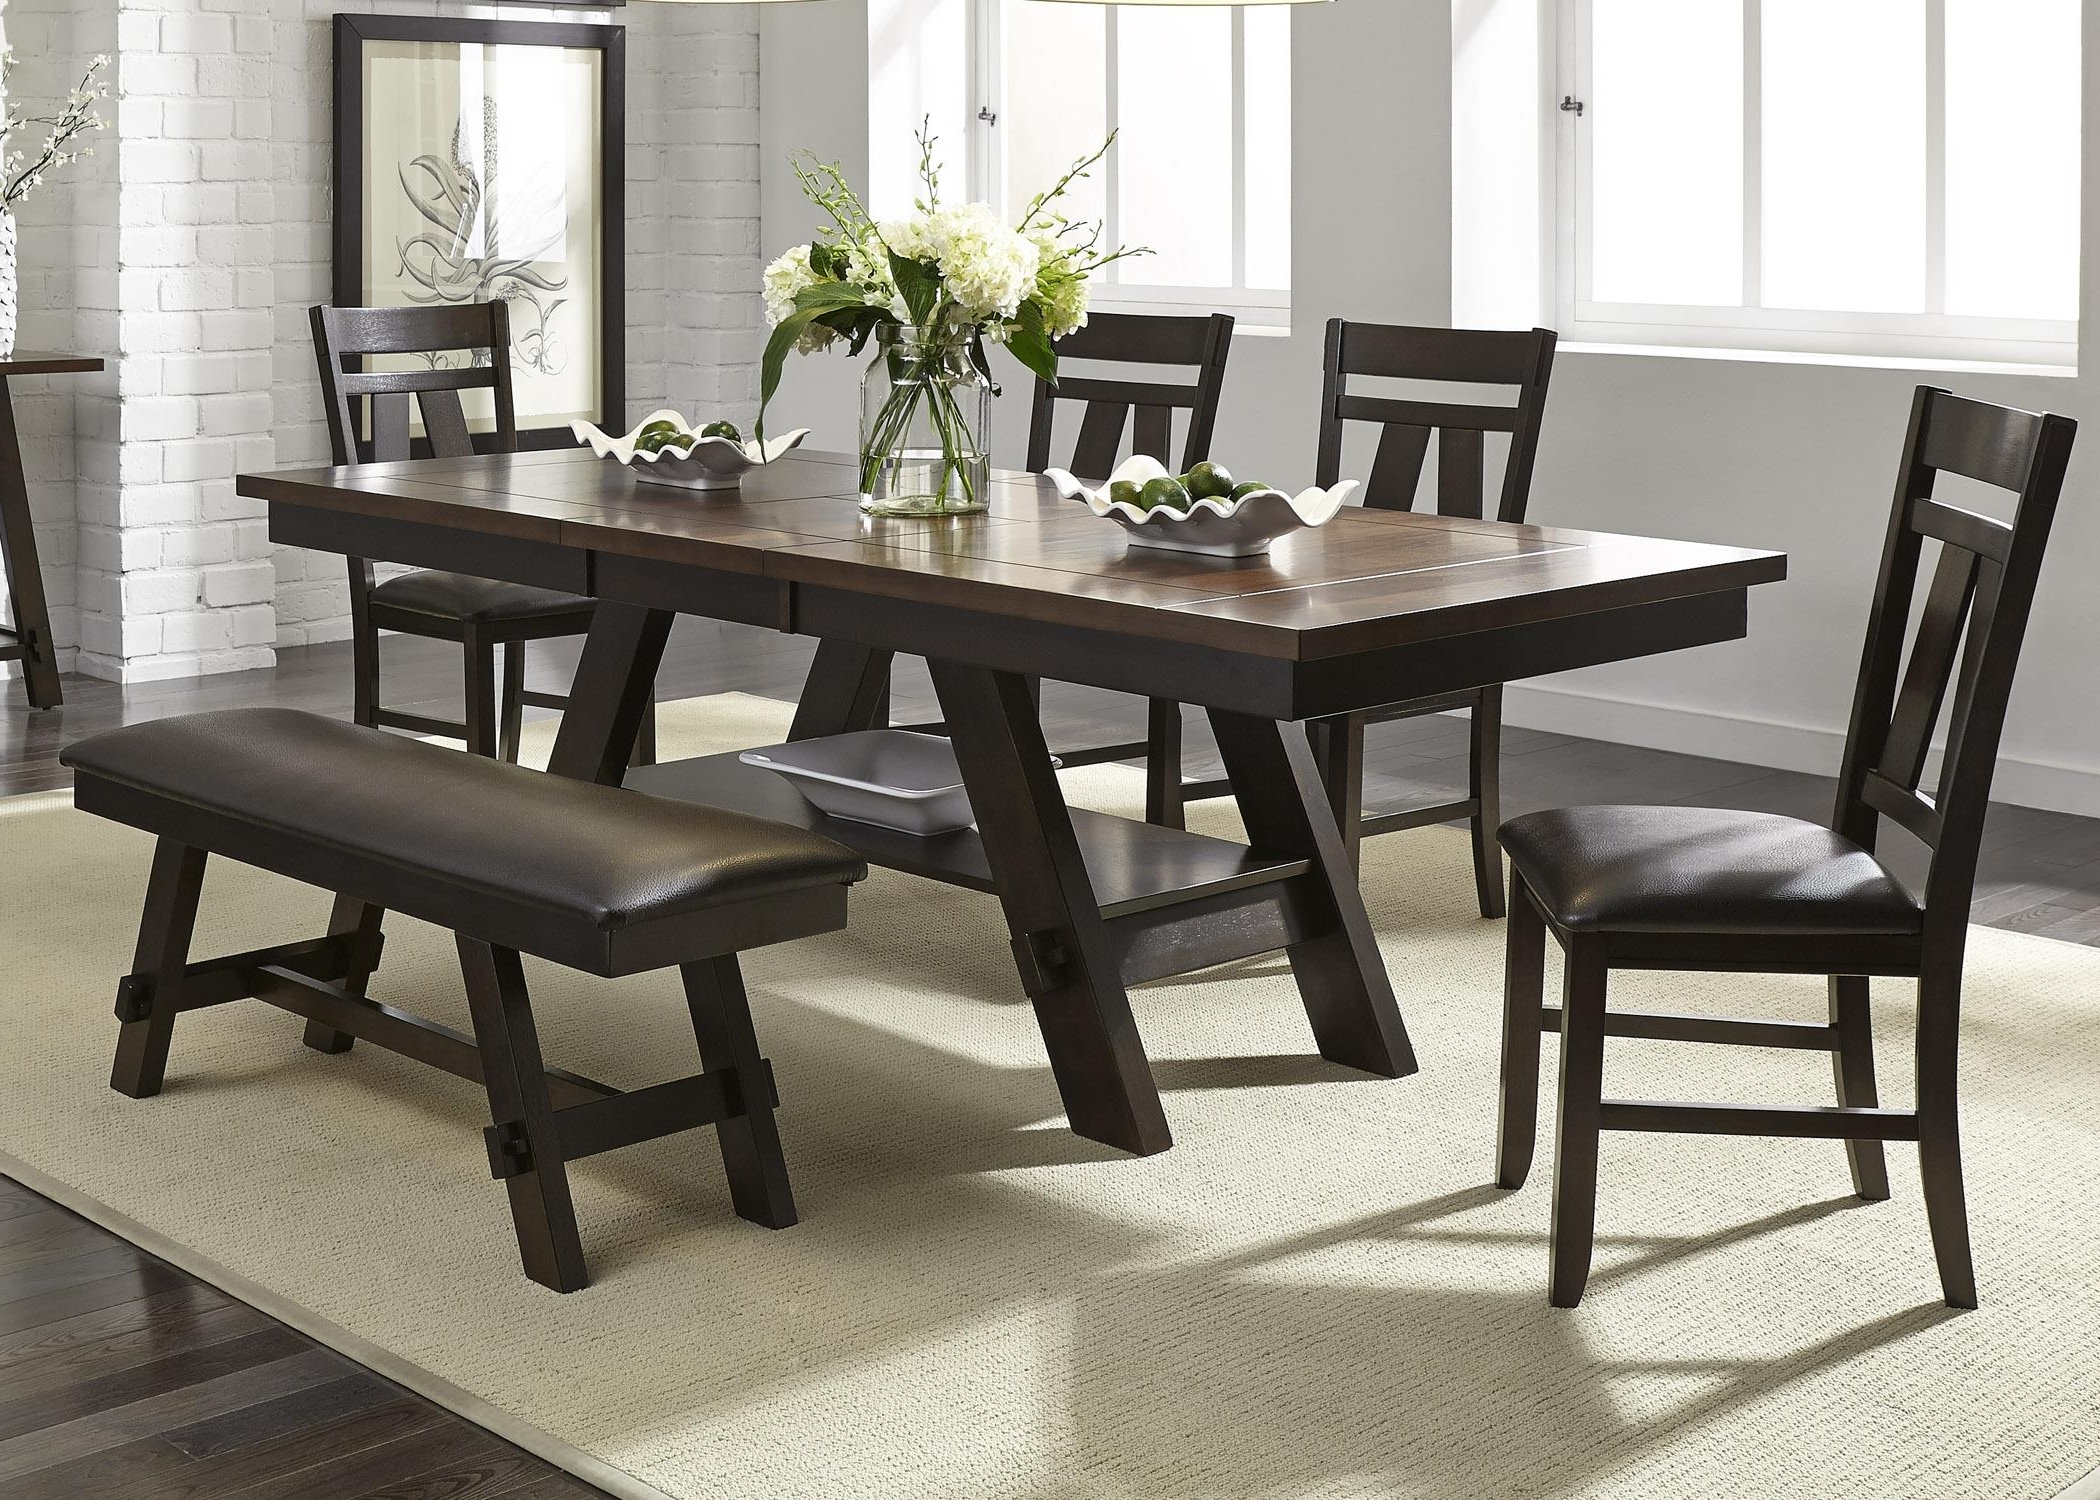 Patterson 6 Piece Dining Sets Within Most Up To Date Dinning Room (View 17 of 25)